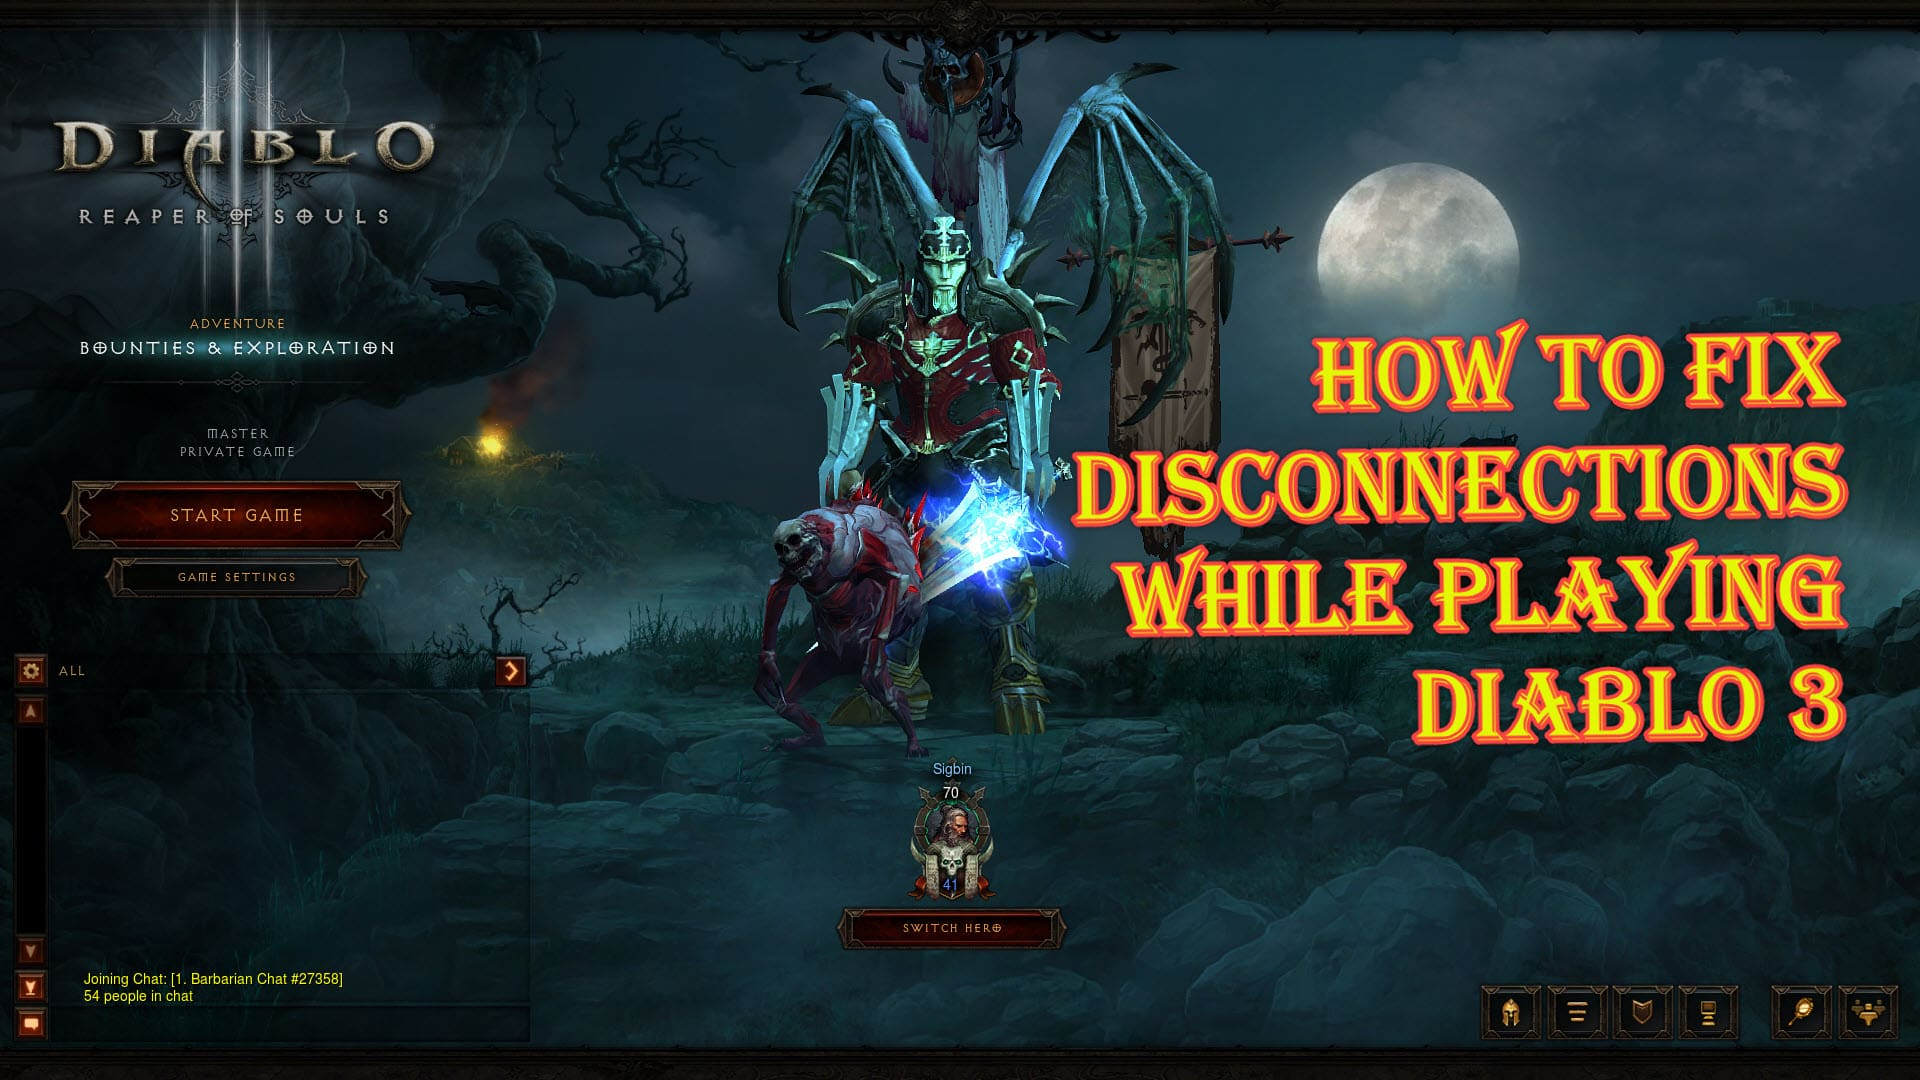 How To Fix Disconnections While Playing Diablo 3